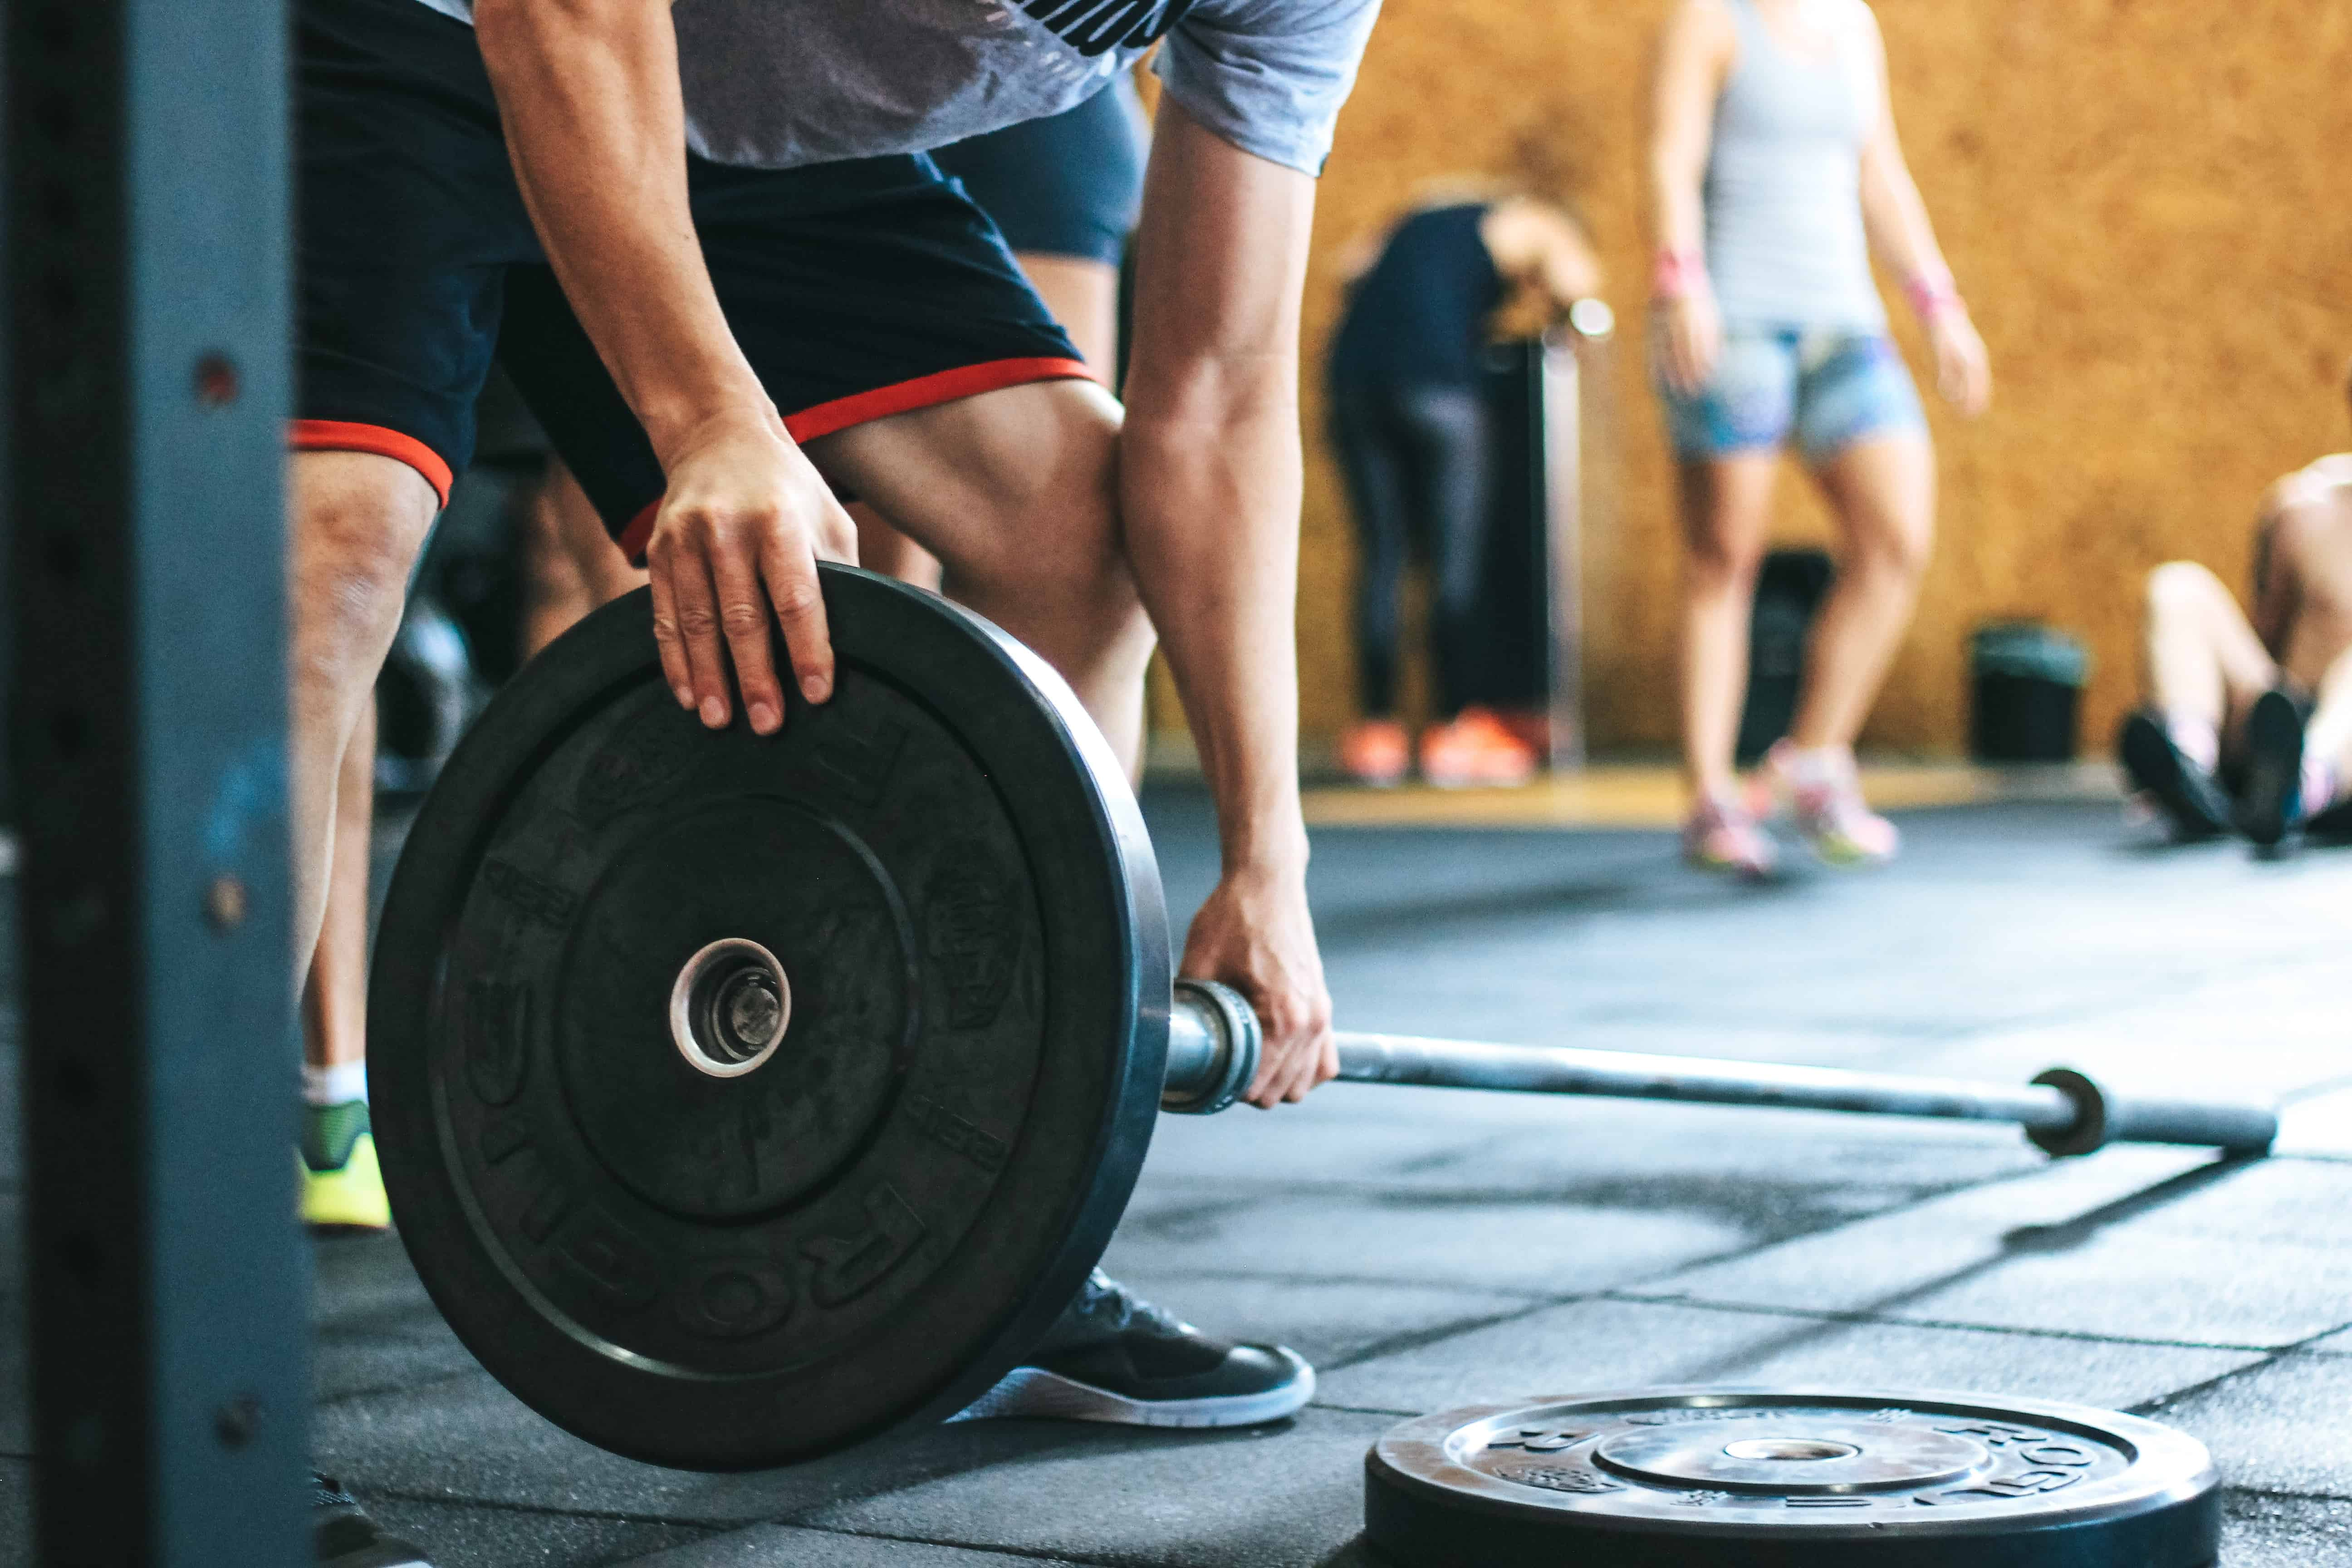 weight training using barbell